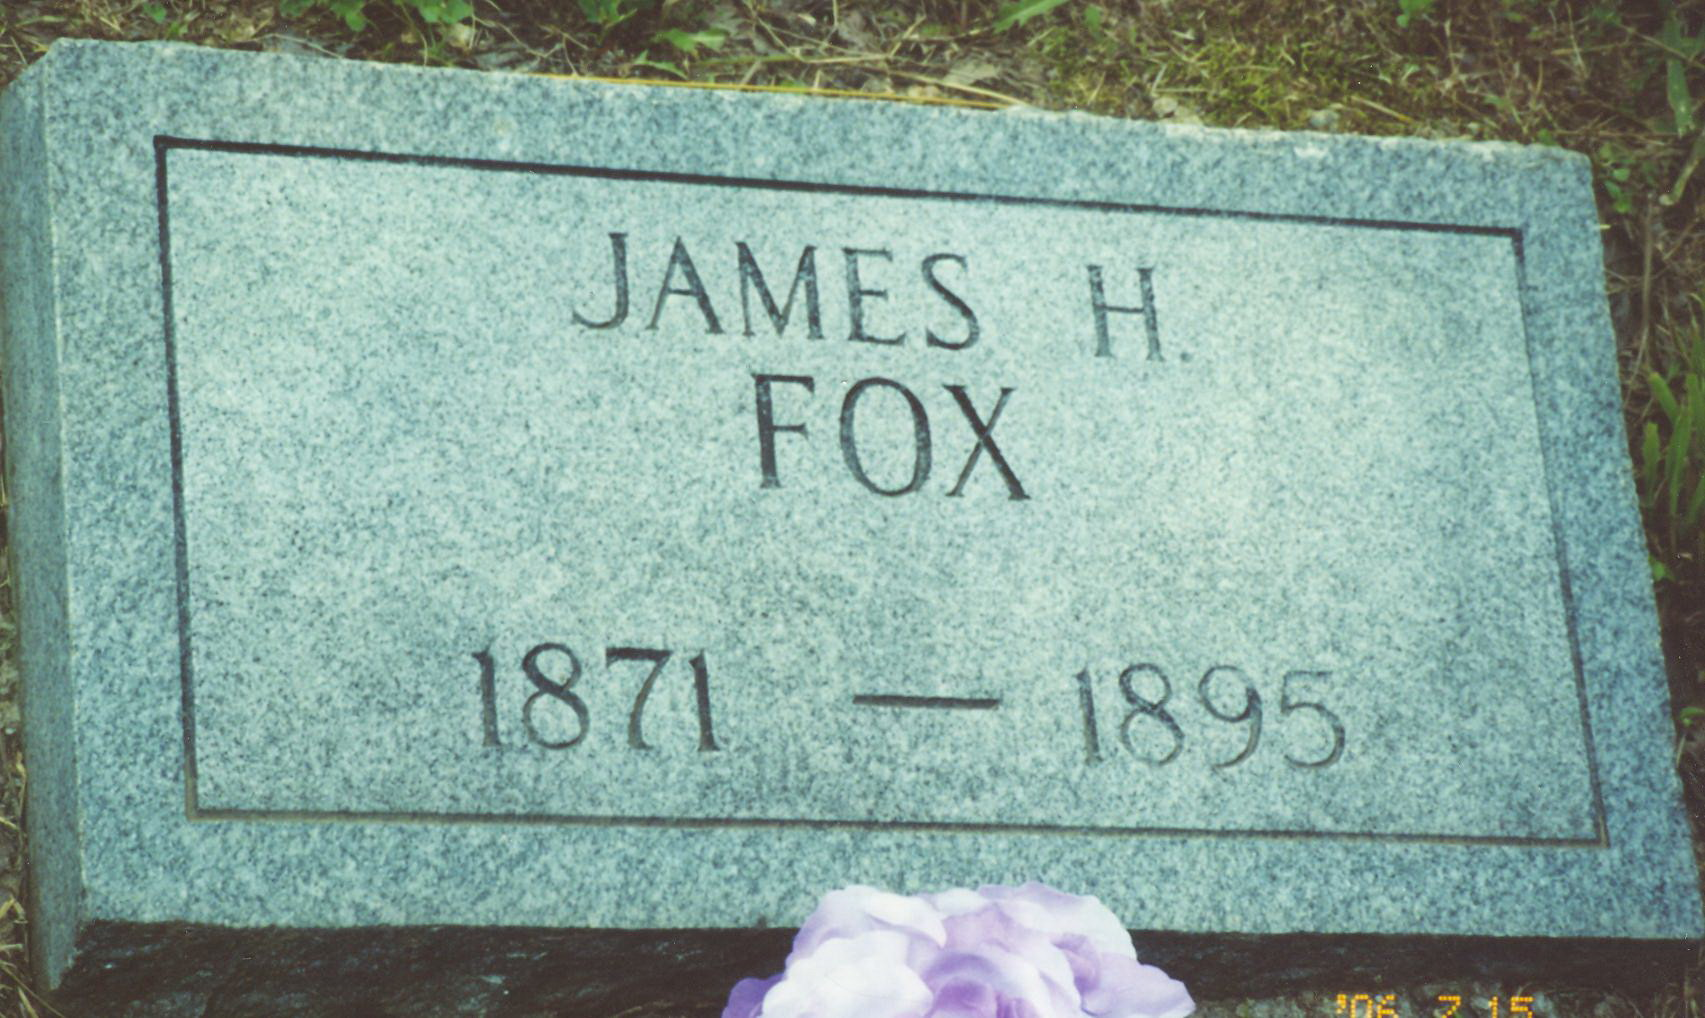 James Carroll Fox